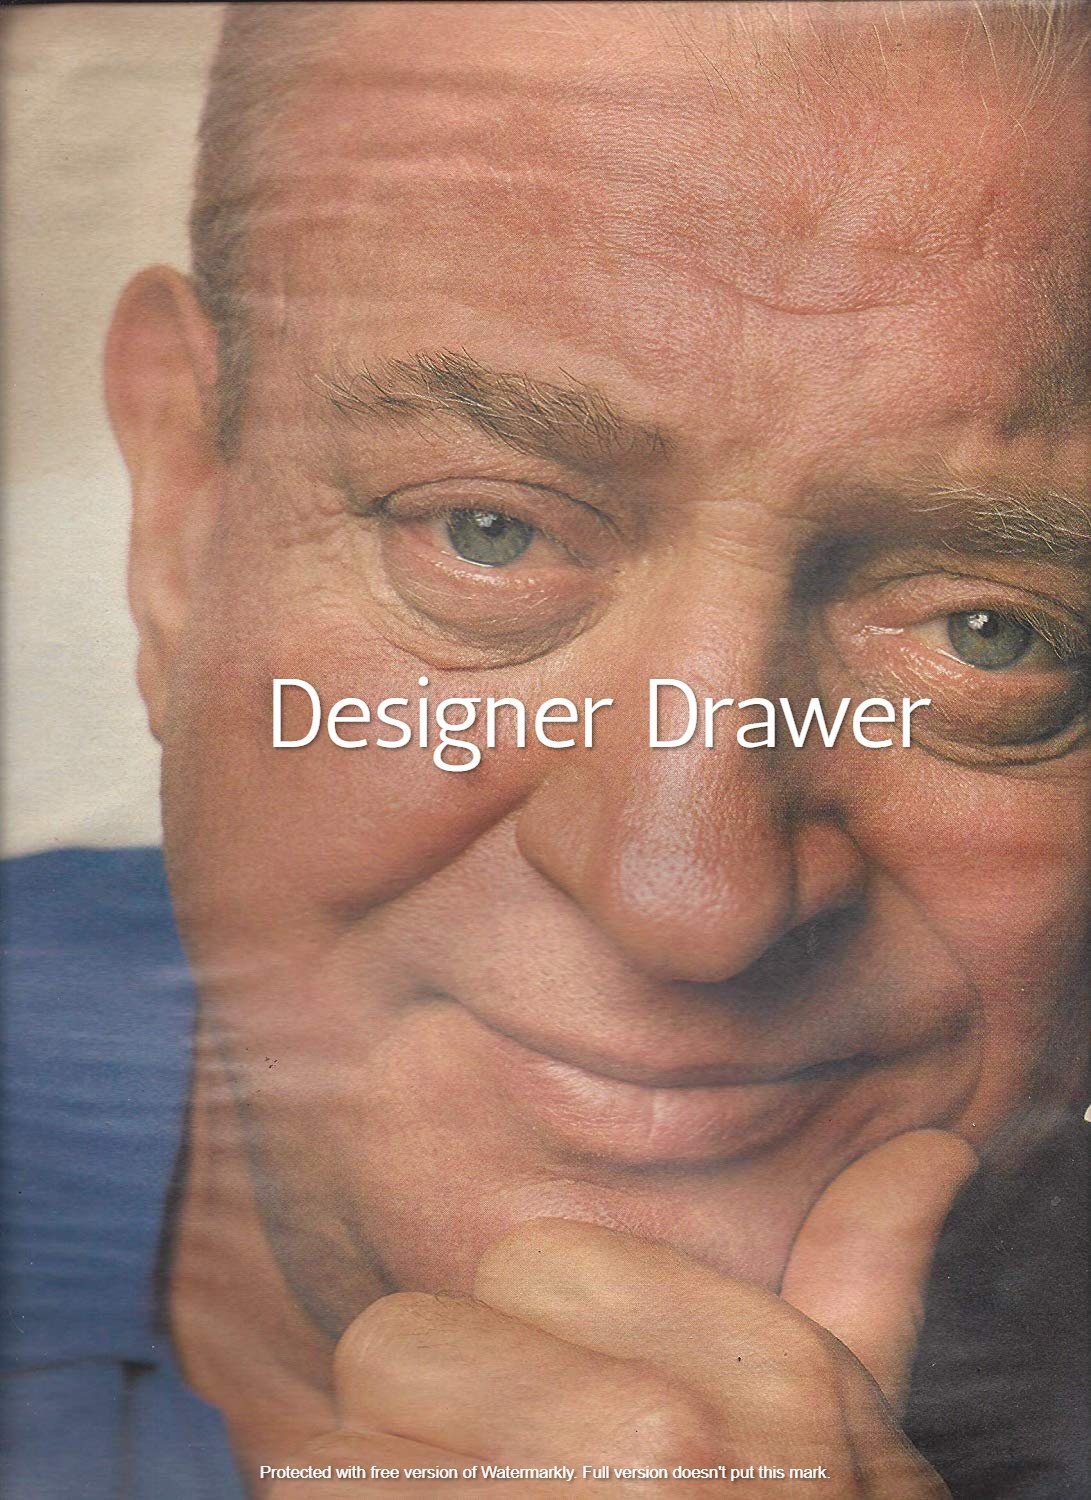 Original Magazine Photo With Rodney Dangerfield Head Shot